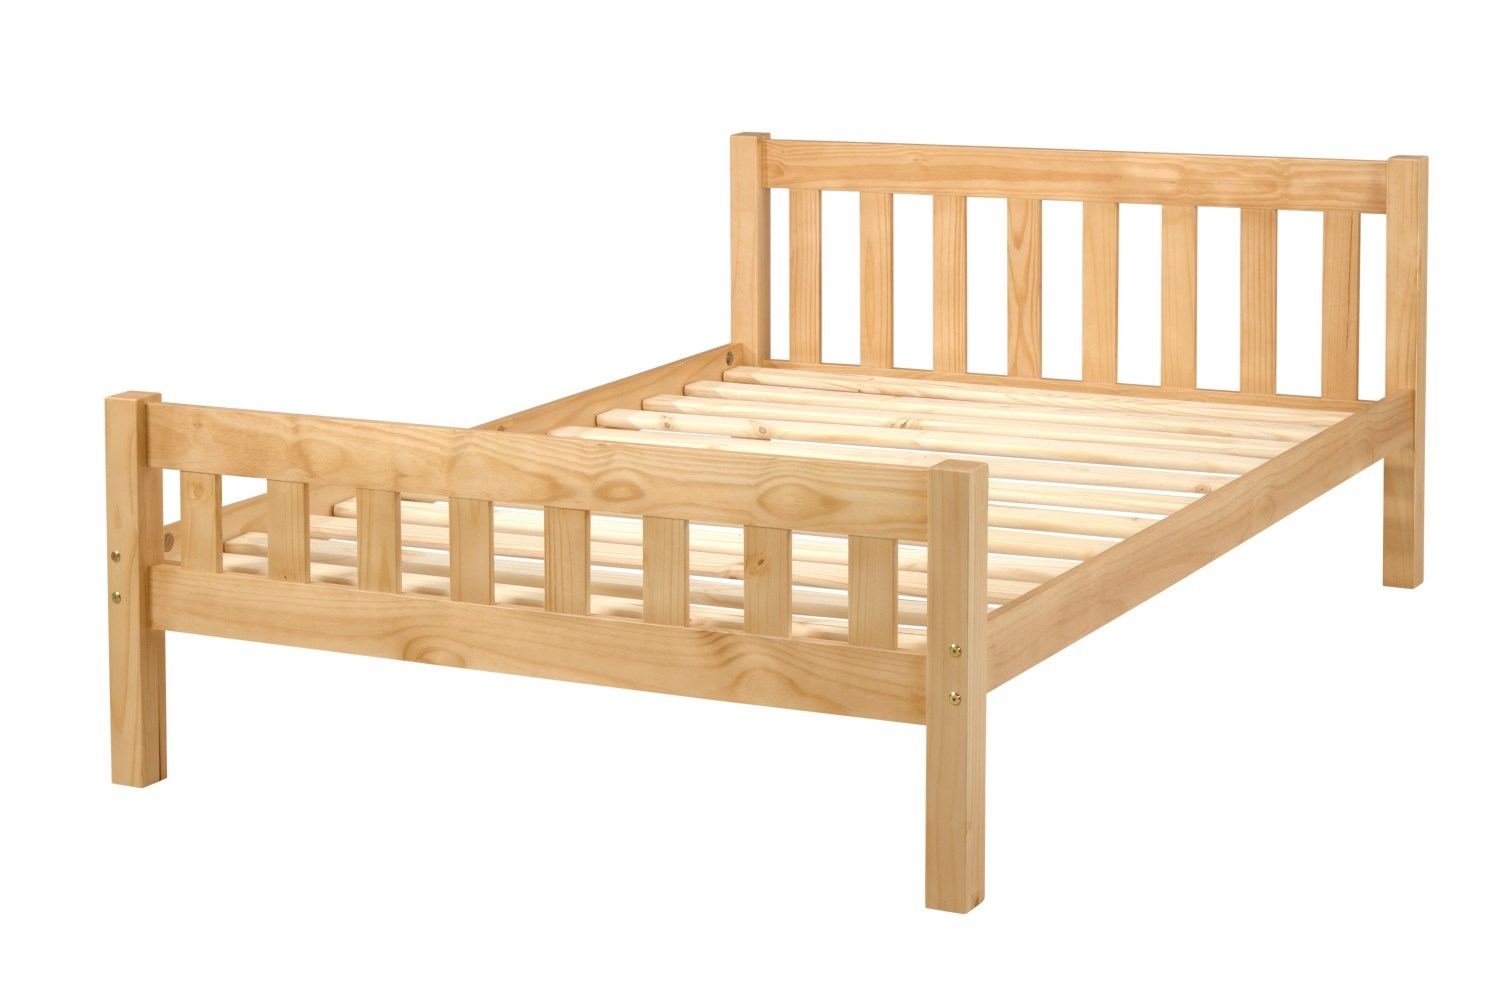 China Vanish Wooden King Size Bed Frame For 2 People China 2 People Bed Kid Bed